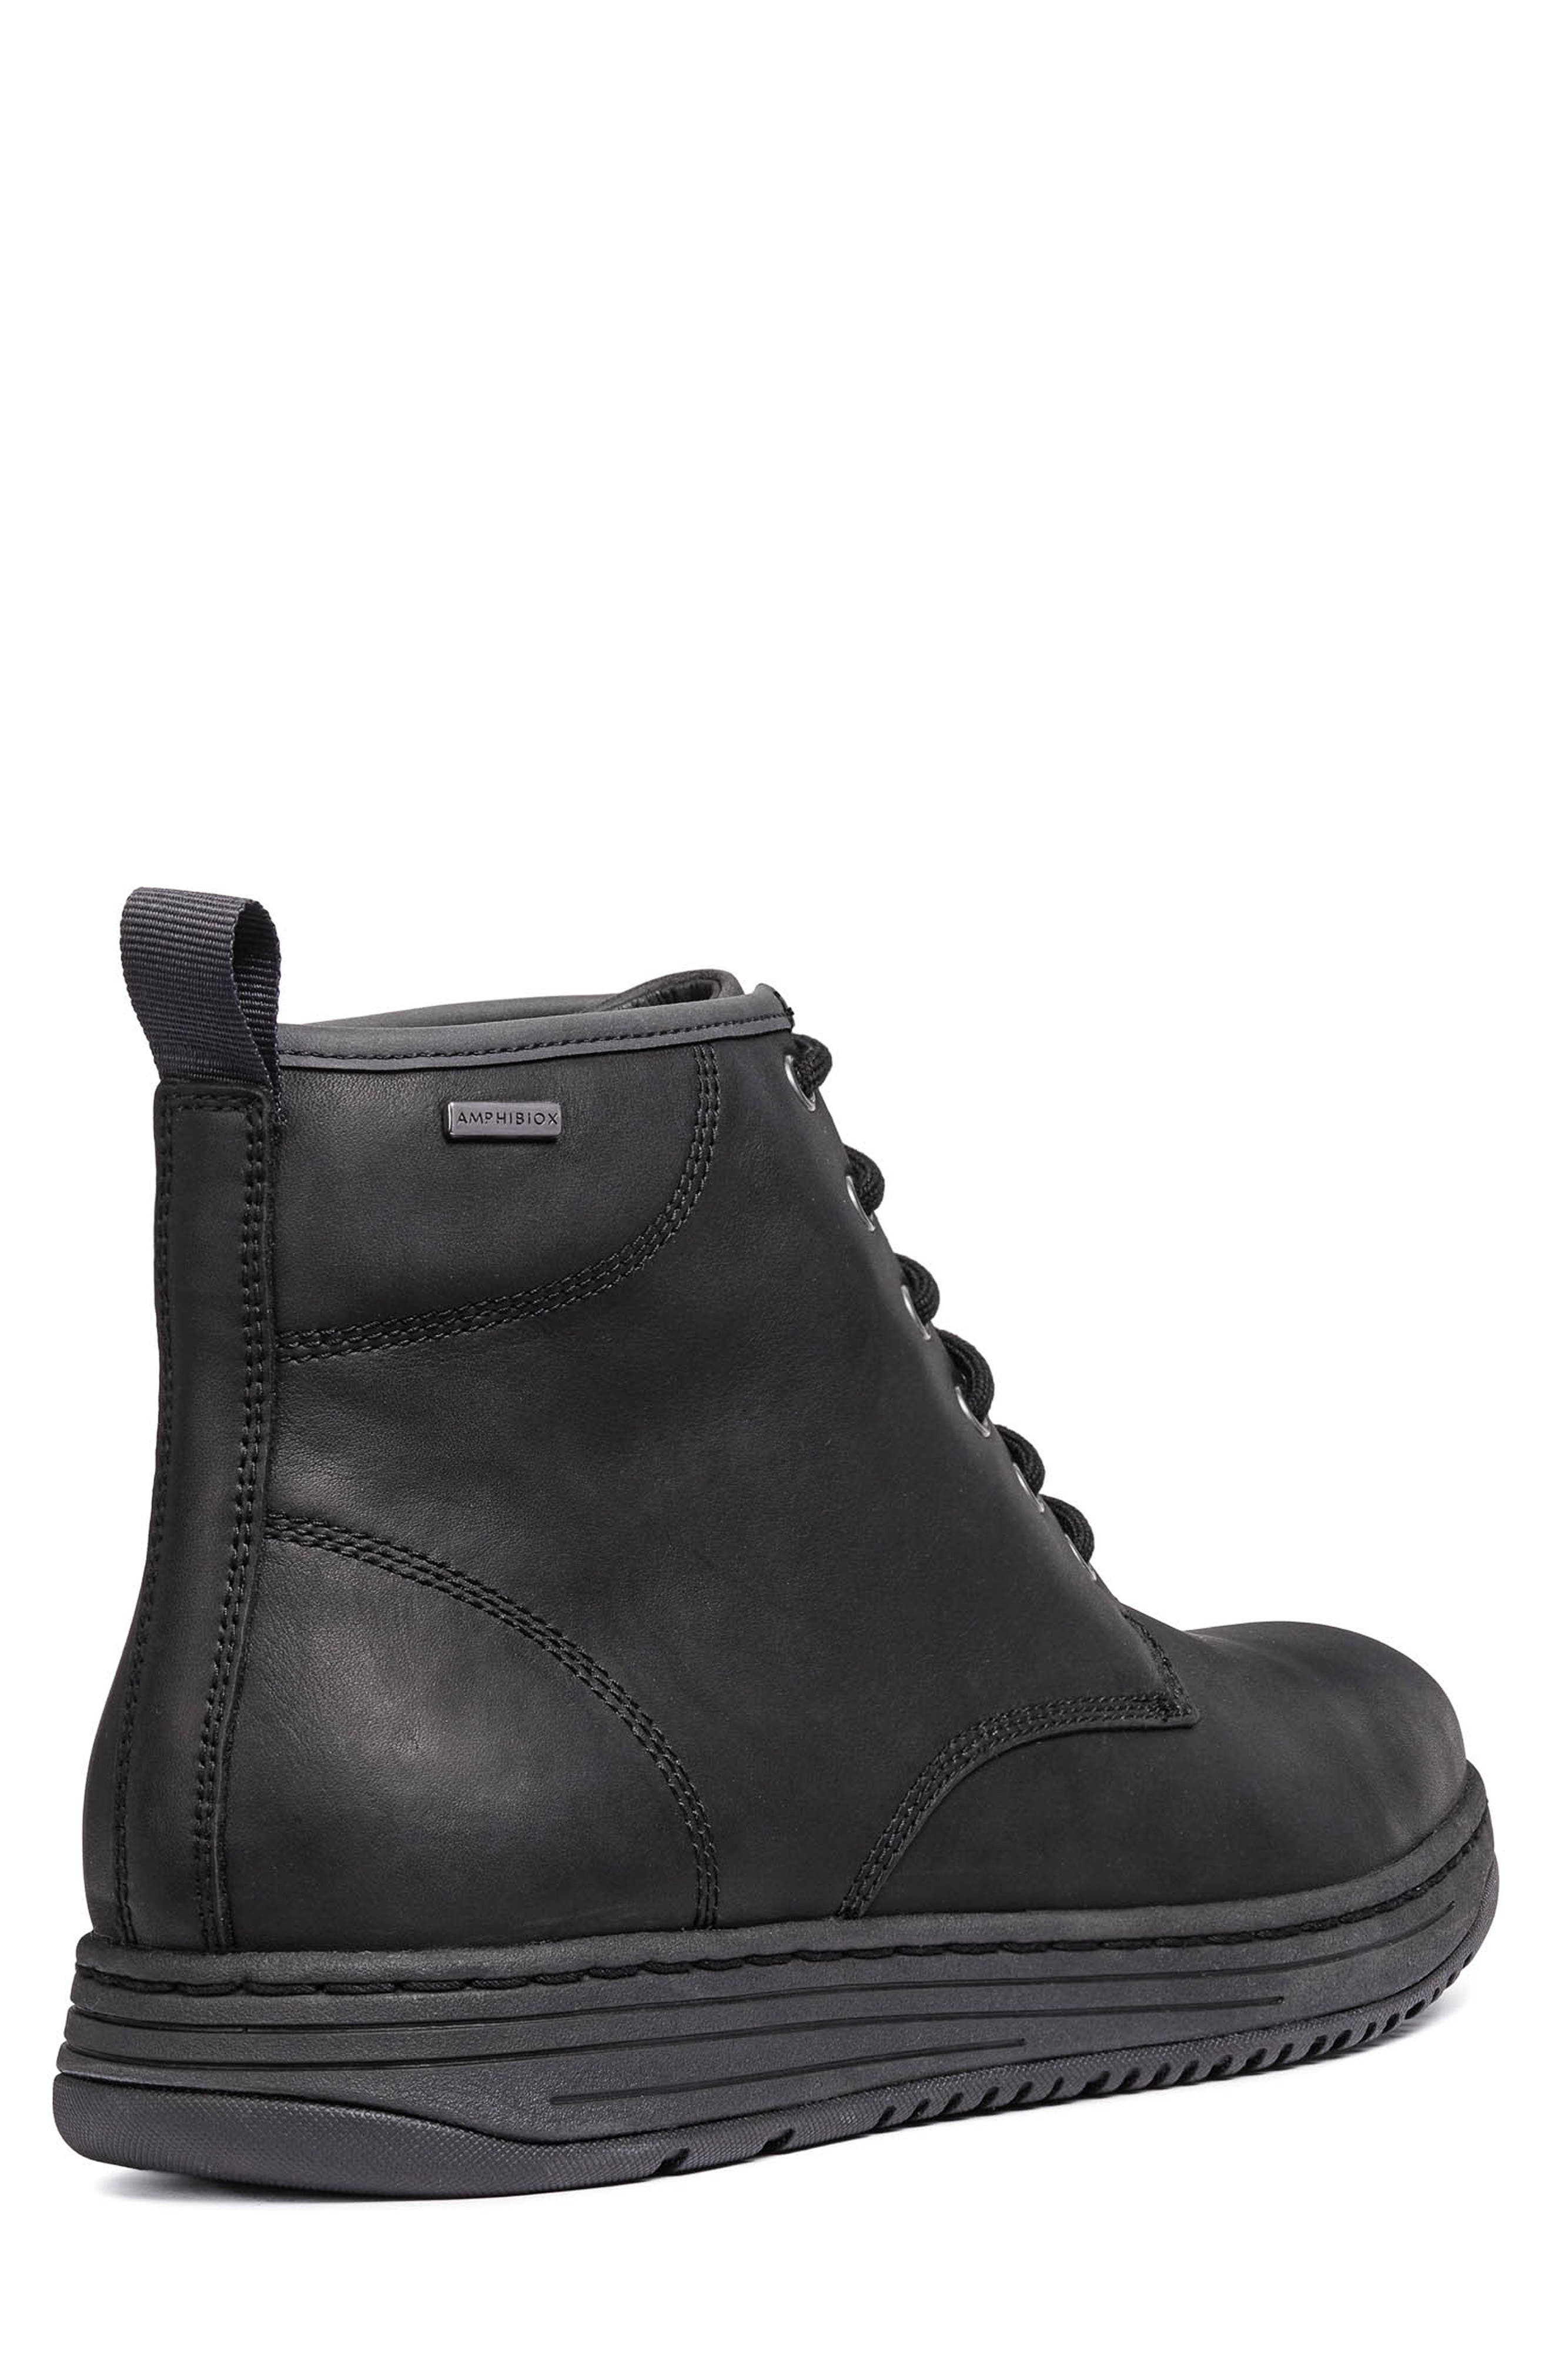 Abroad ABX 2 Tall Lace-Up Boot,                             Alternate thumbnail 8, color,                             BLACK